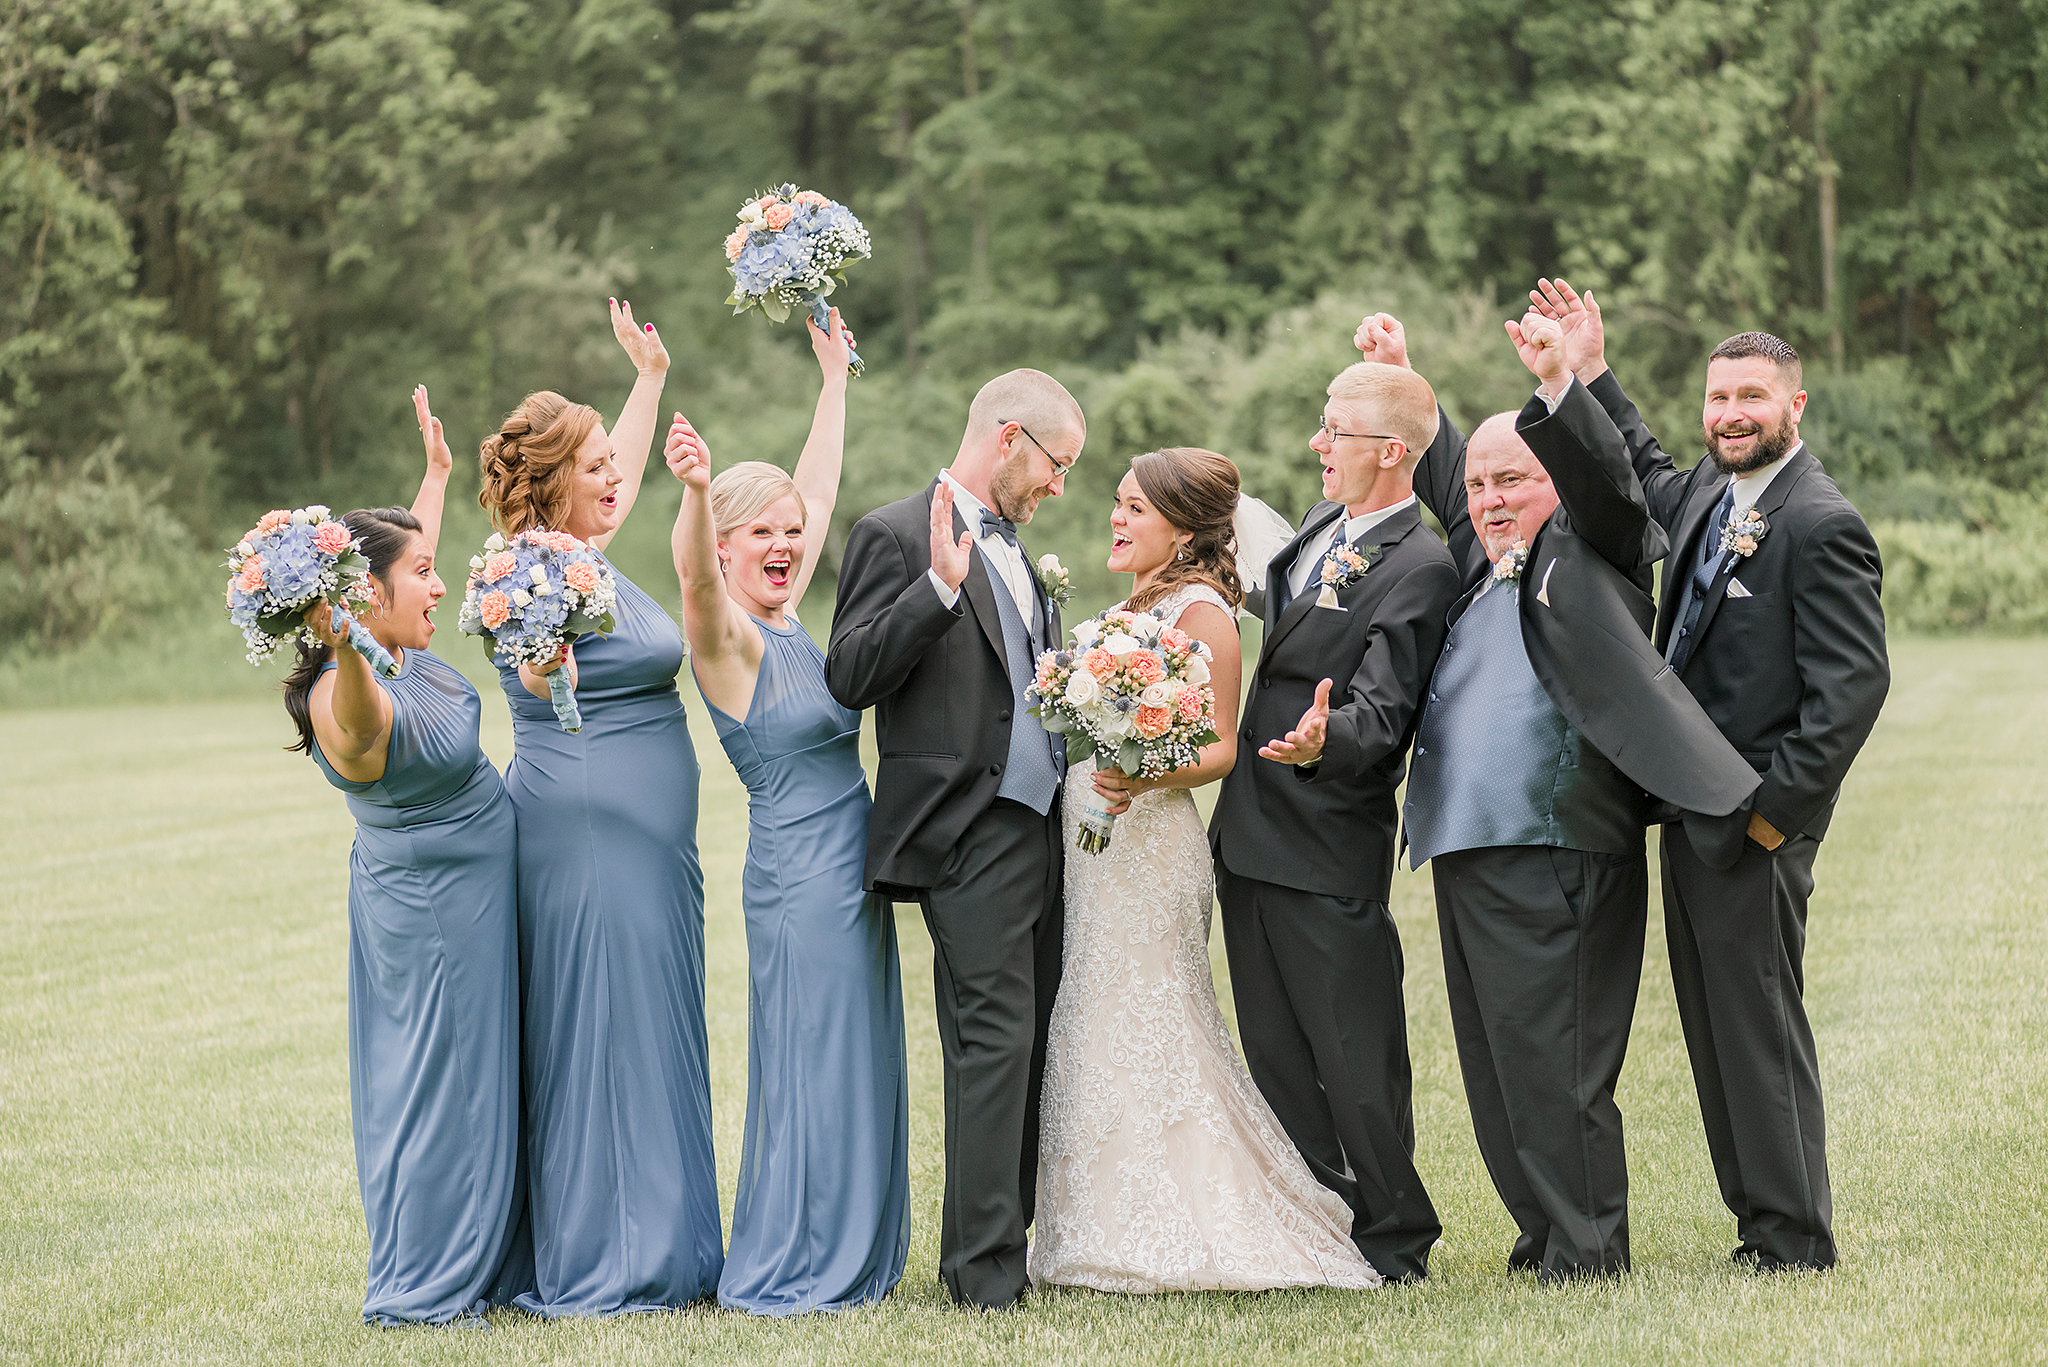 Lindsay-Adkins-Photography-Michigan-Wedding-Photographer-Sauk-Valley-Brooklyn-Michigan38